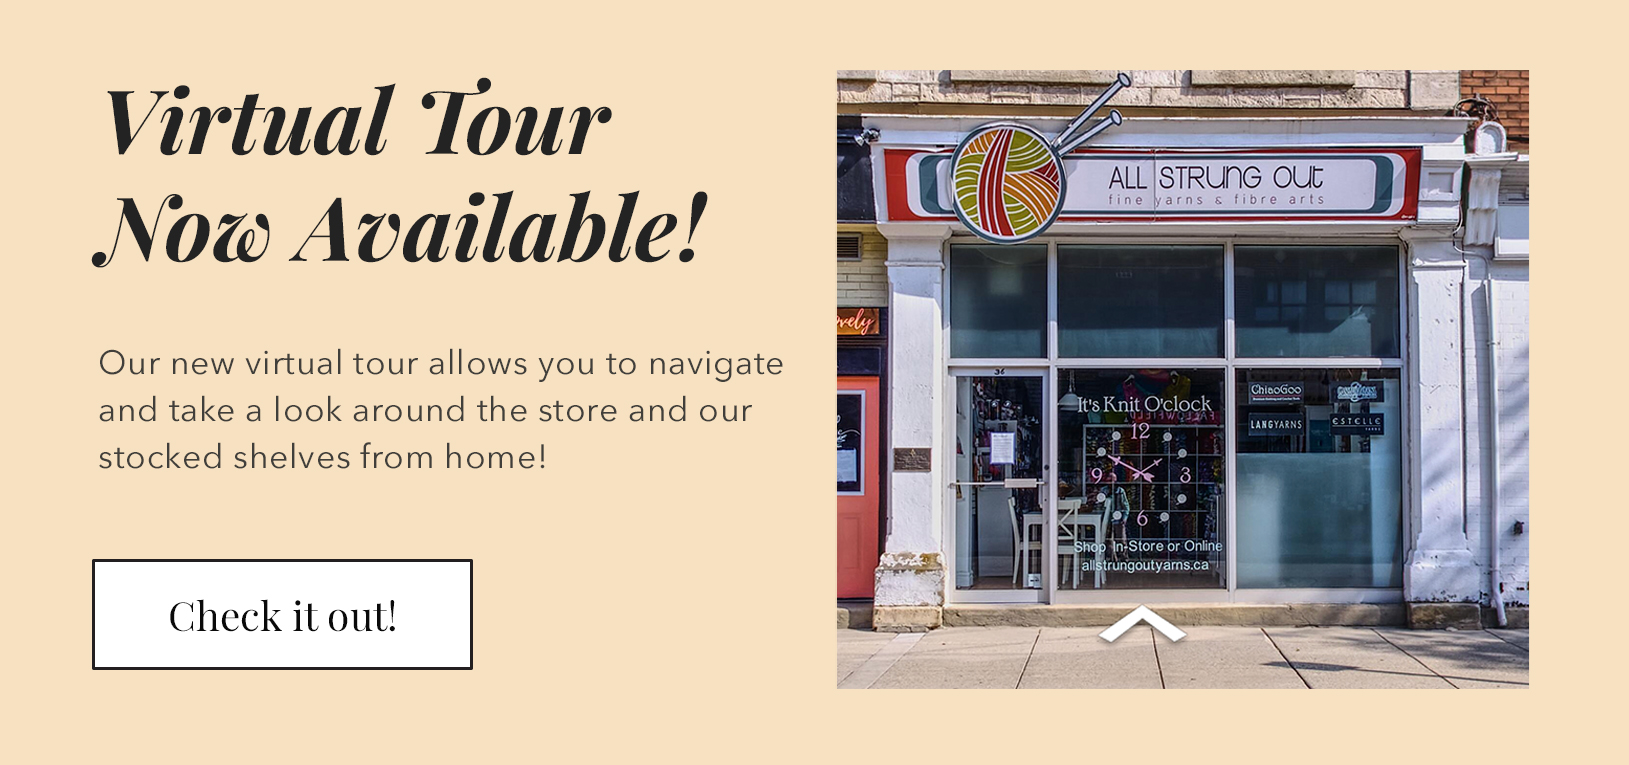 Virtual Store Tour now available!